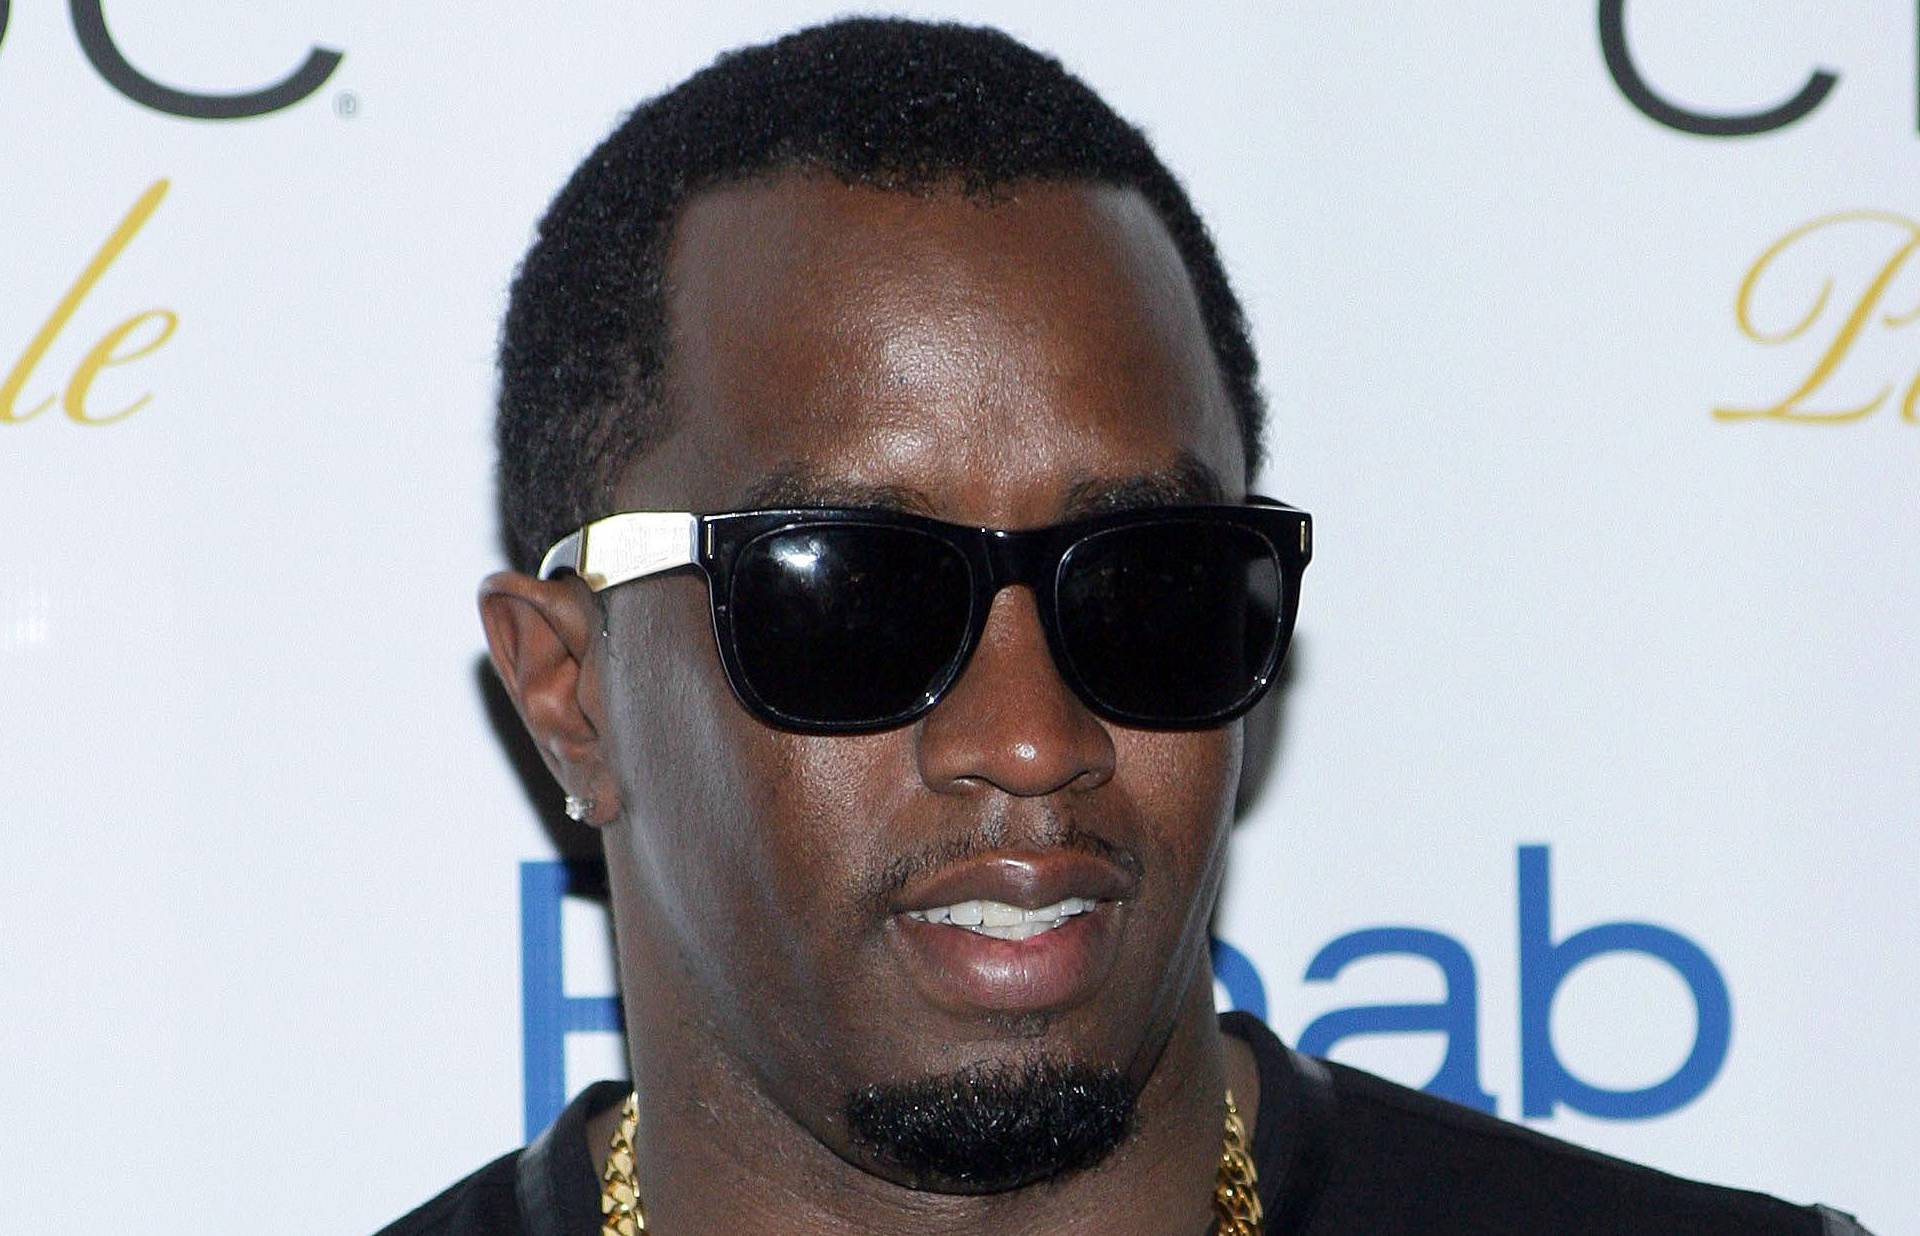 Puff Daddy Photocall - Las Vegas